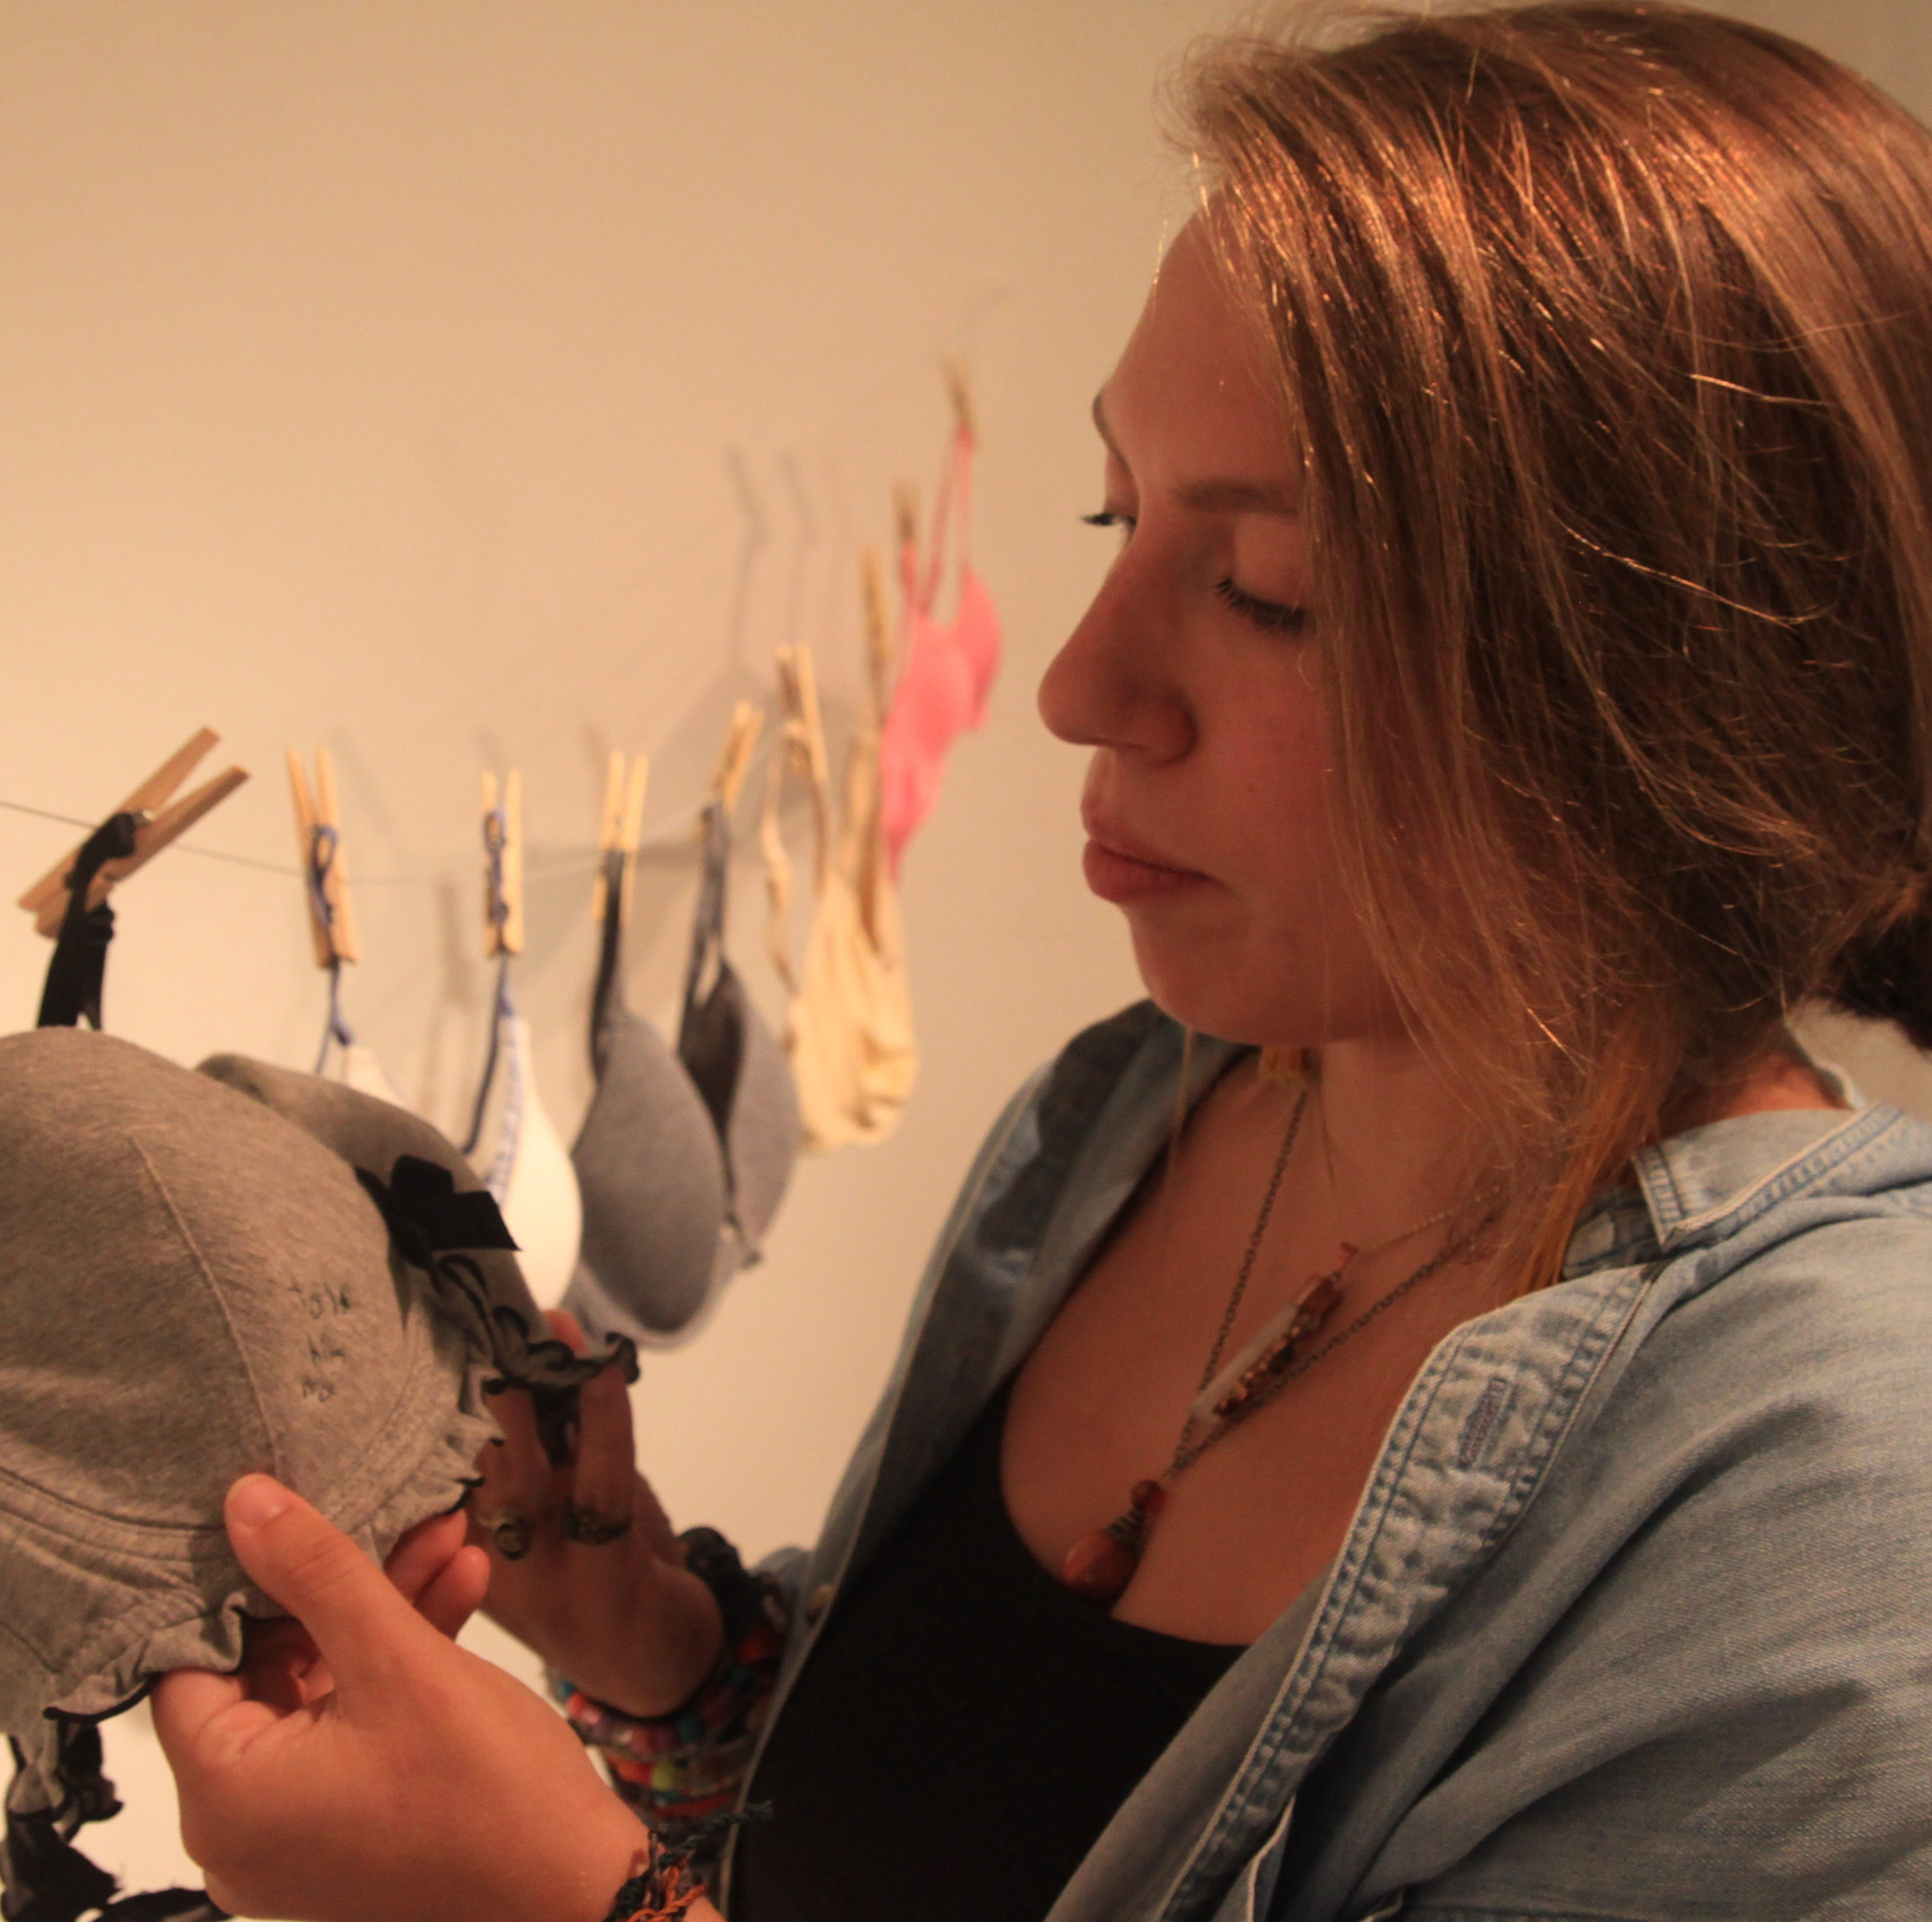 'What were you wearing?': Artist at Clemson uses embroidered bras to tell #MeToo stories